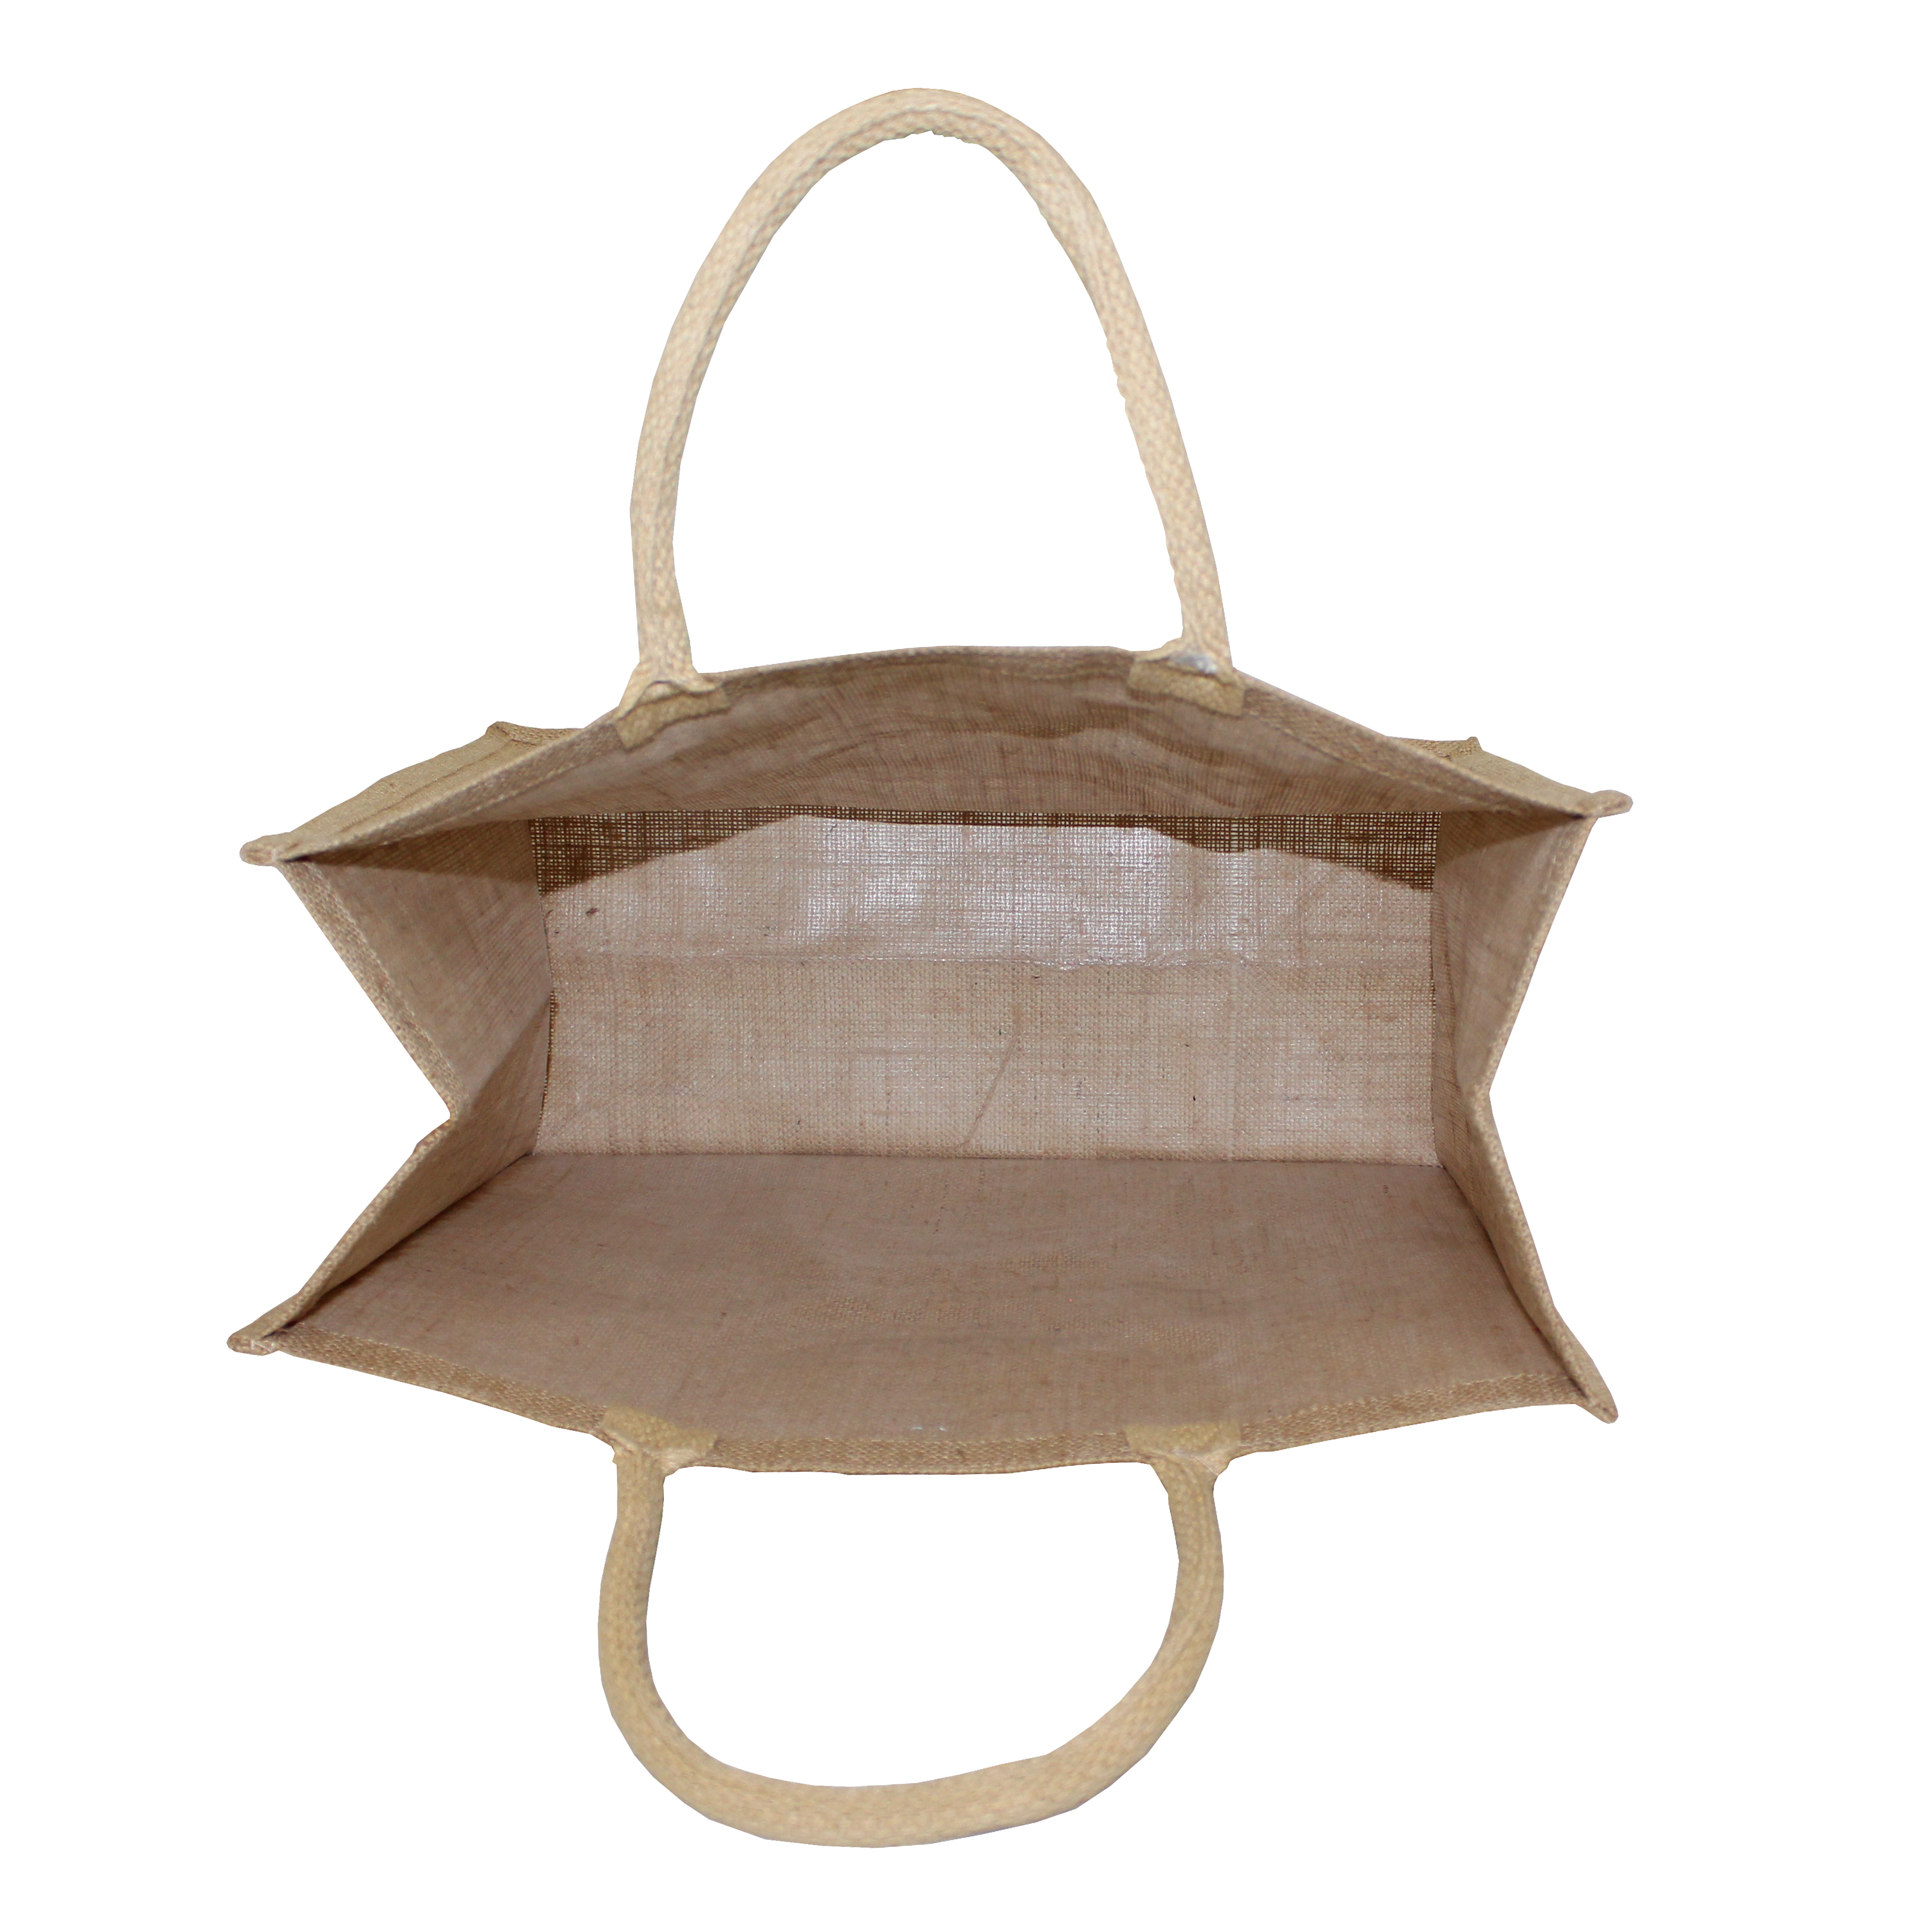 PP Laminated Jute Tote Bag With Rope Handle